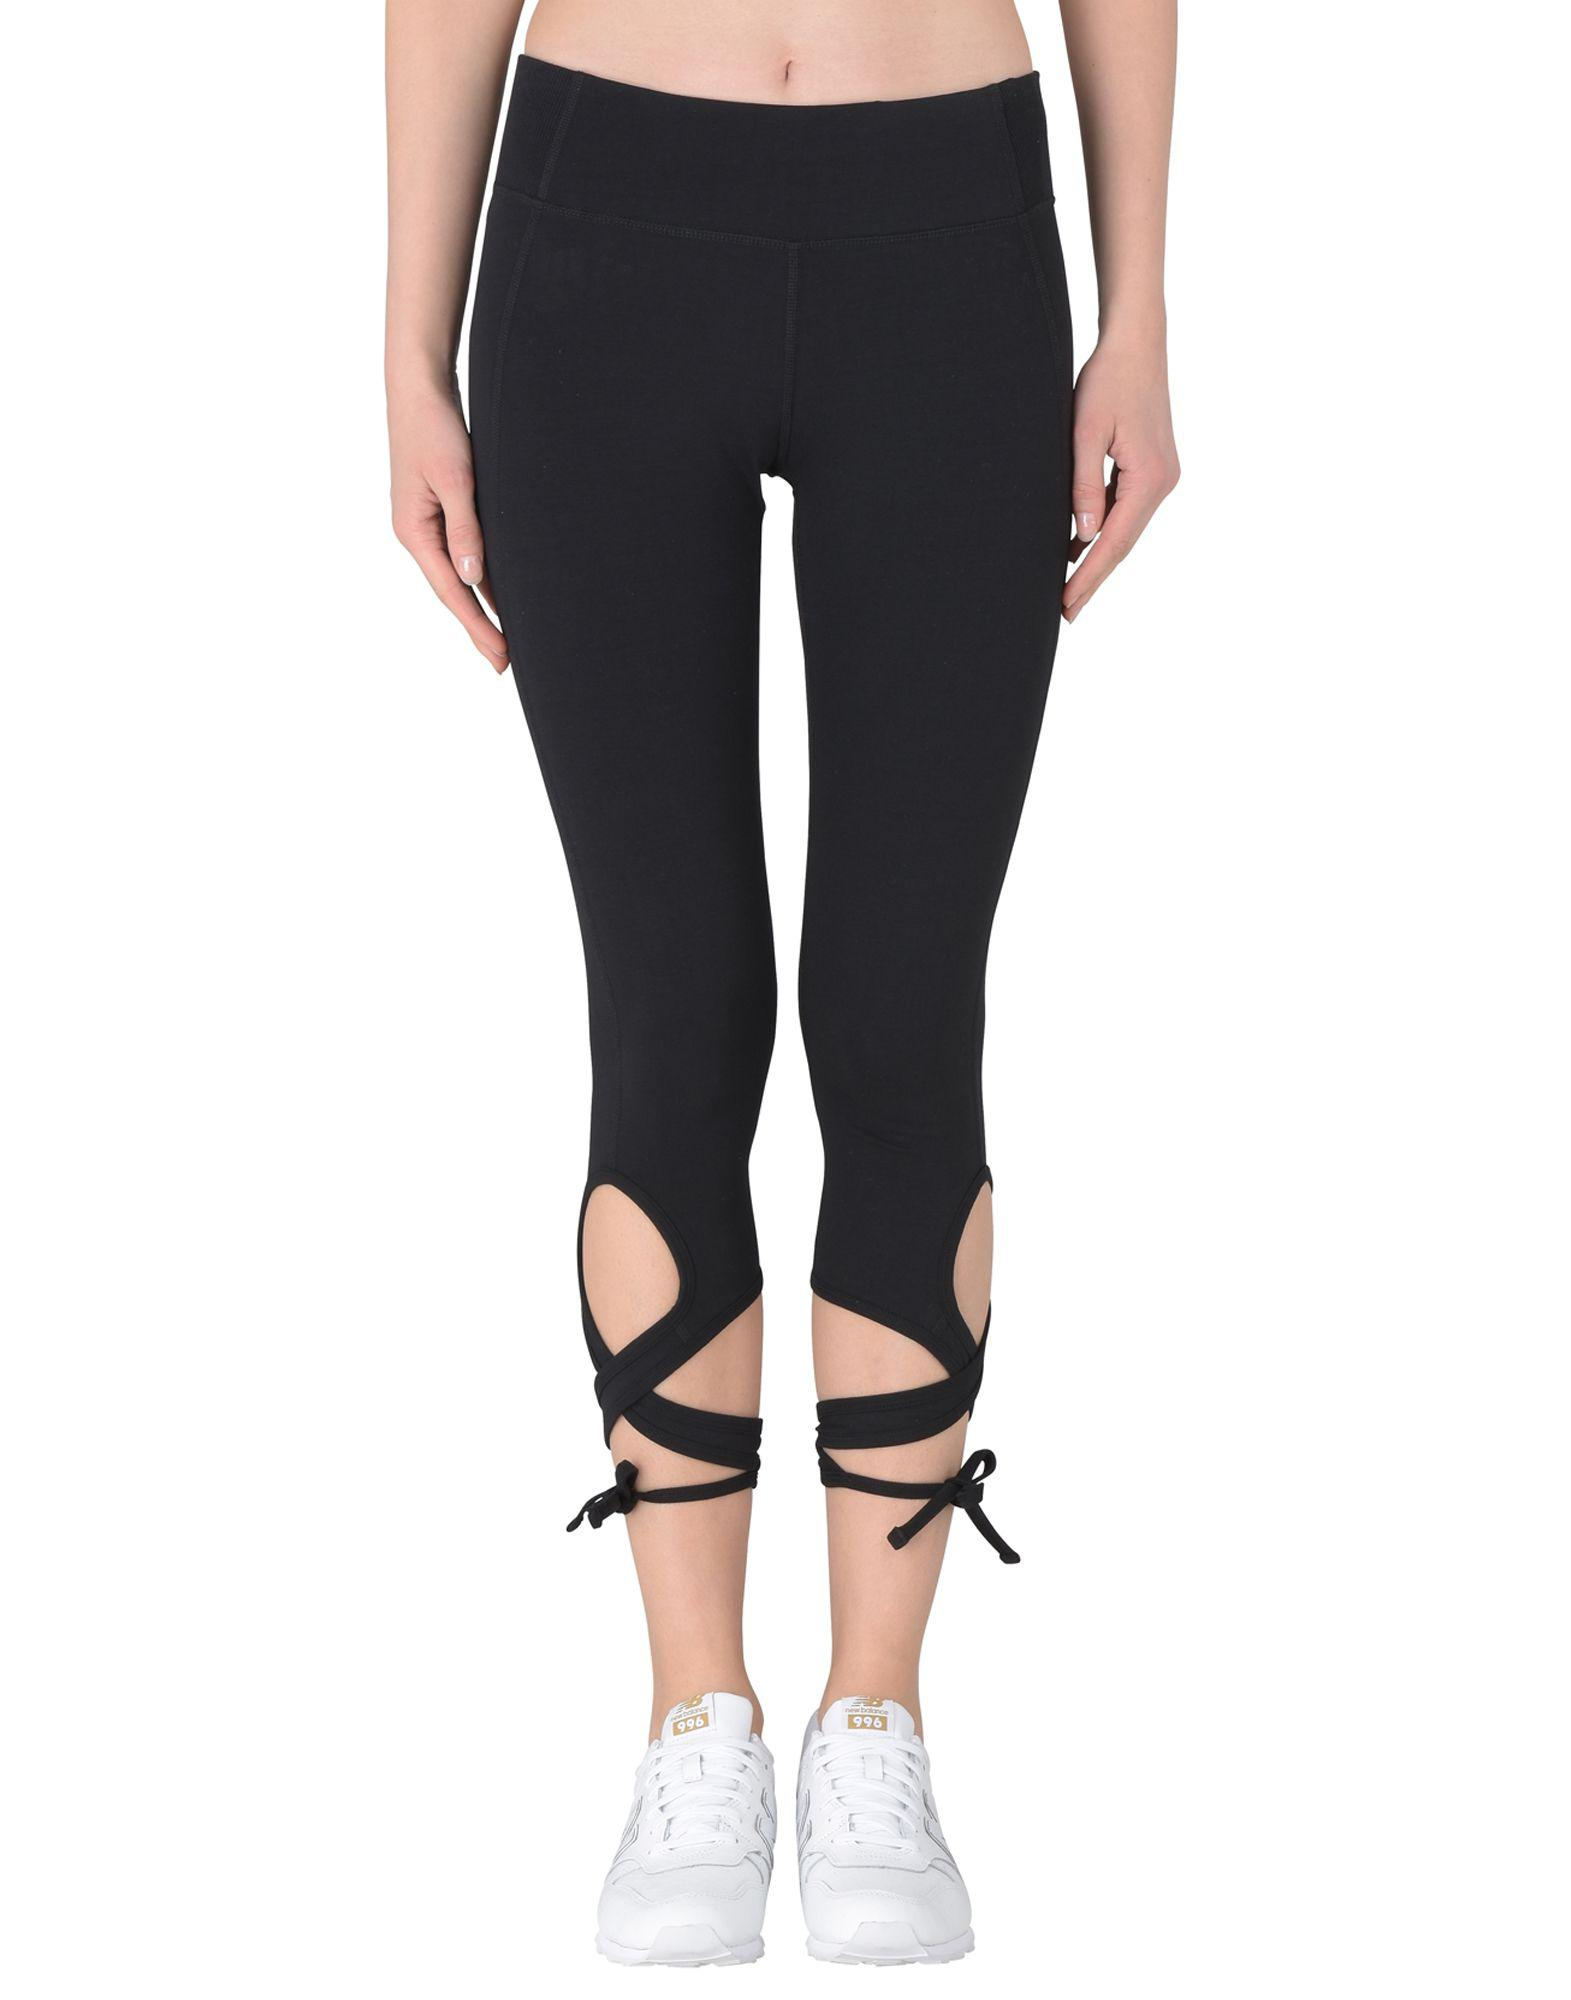 TROUSERS - Leggings Salamandrina Good Selling For Sale sPGXQ9xJ3y